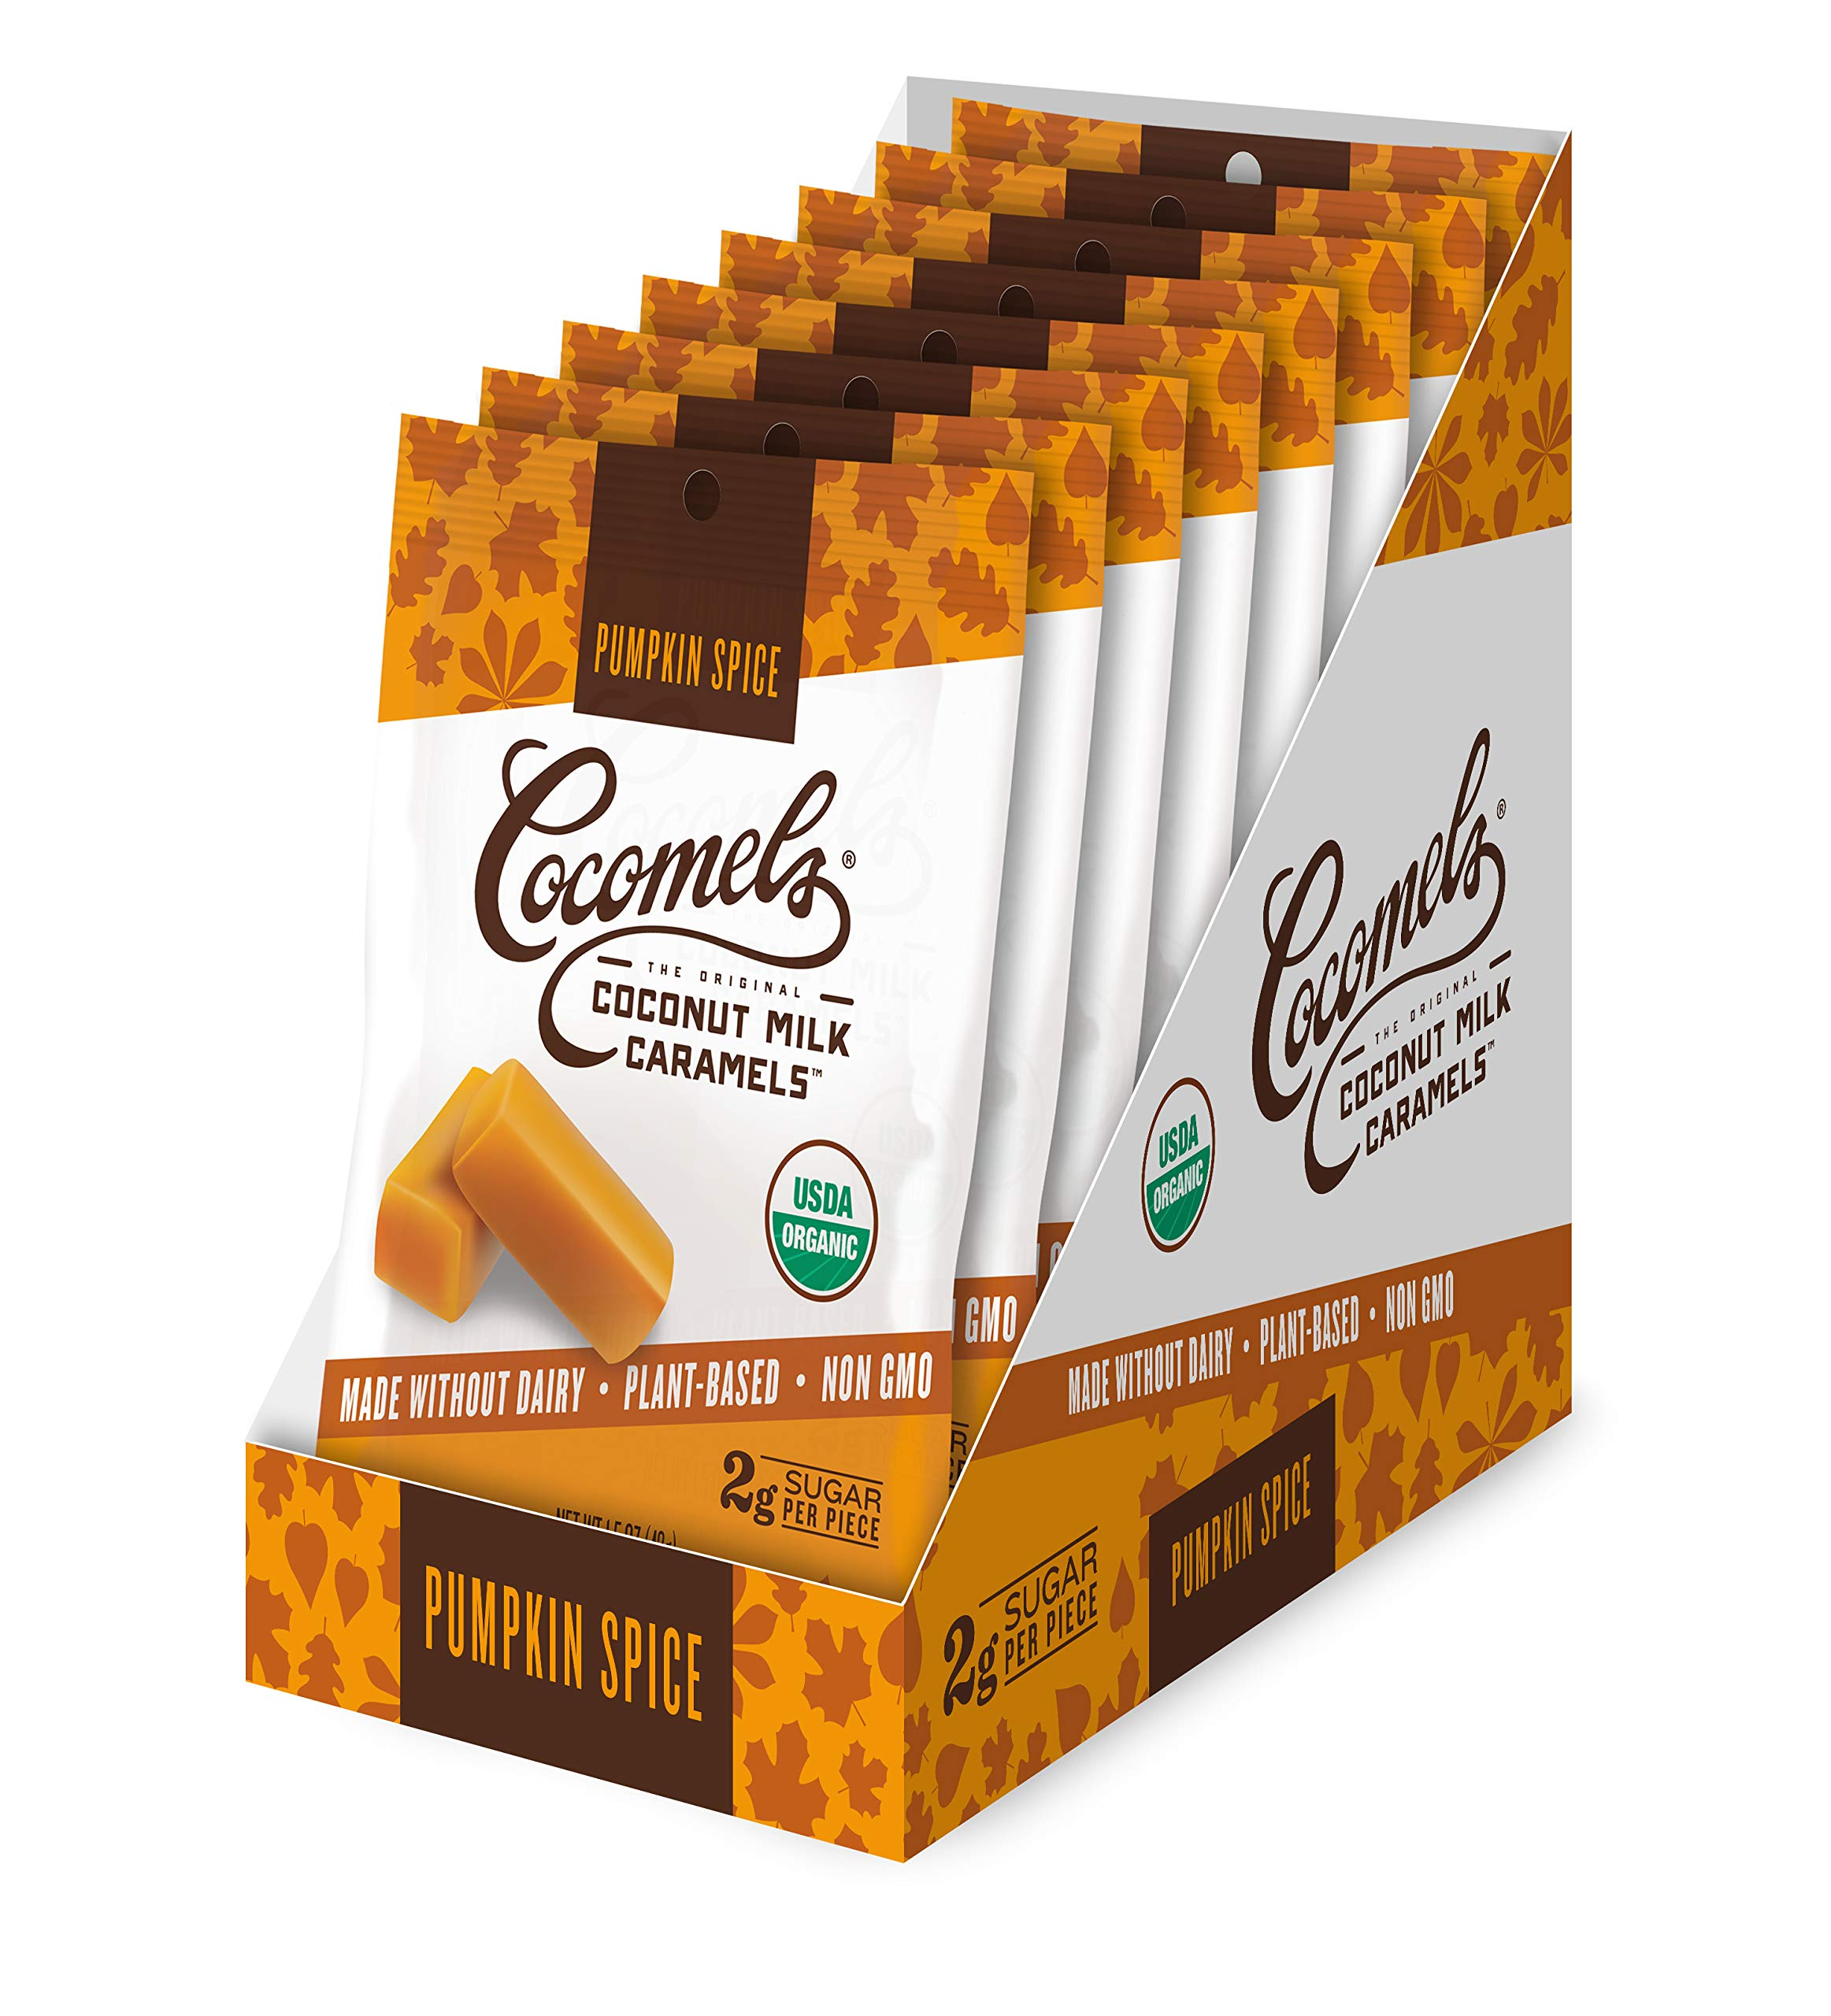 Cocomels Pumpkin Spice Coconut Milk Caramels, Snack Sized Pack, Organic, Dairy Free, Vegan, Gluten Free, Non-GMO, No High Fructose Corn Syrup, Kosher, Plant Based (8 x 1.5 oz Packs) by Cocomels